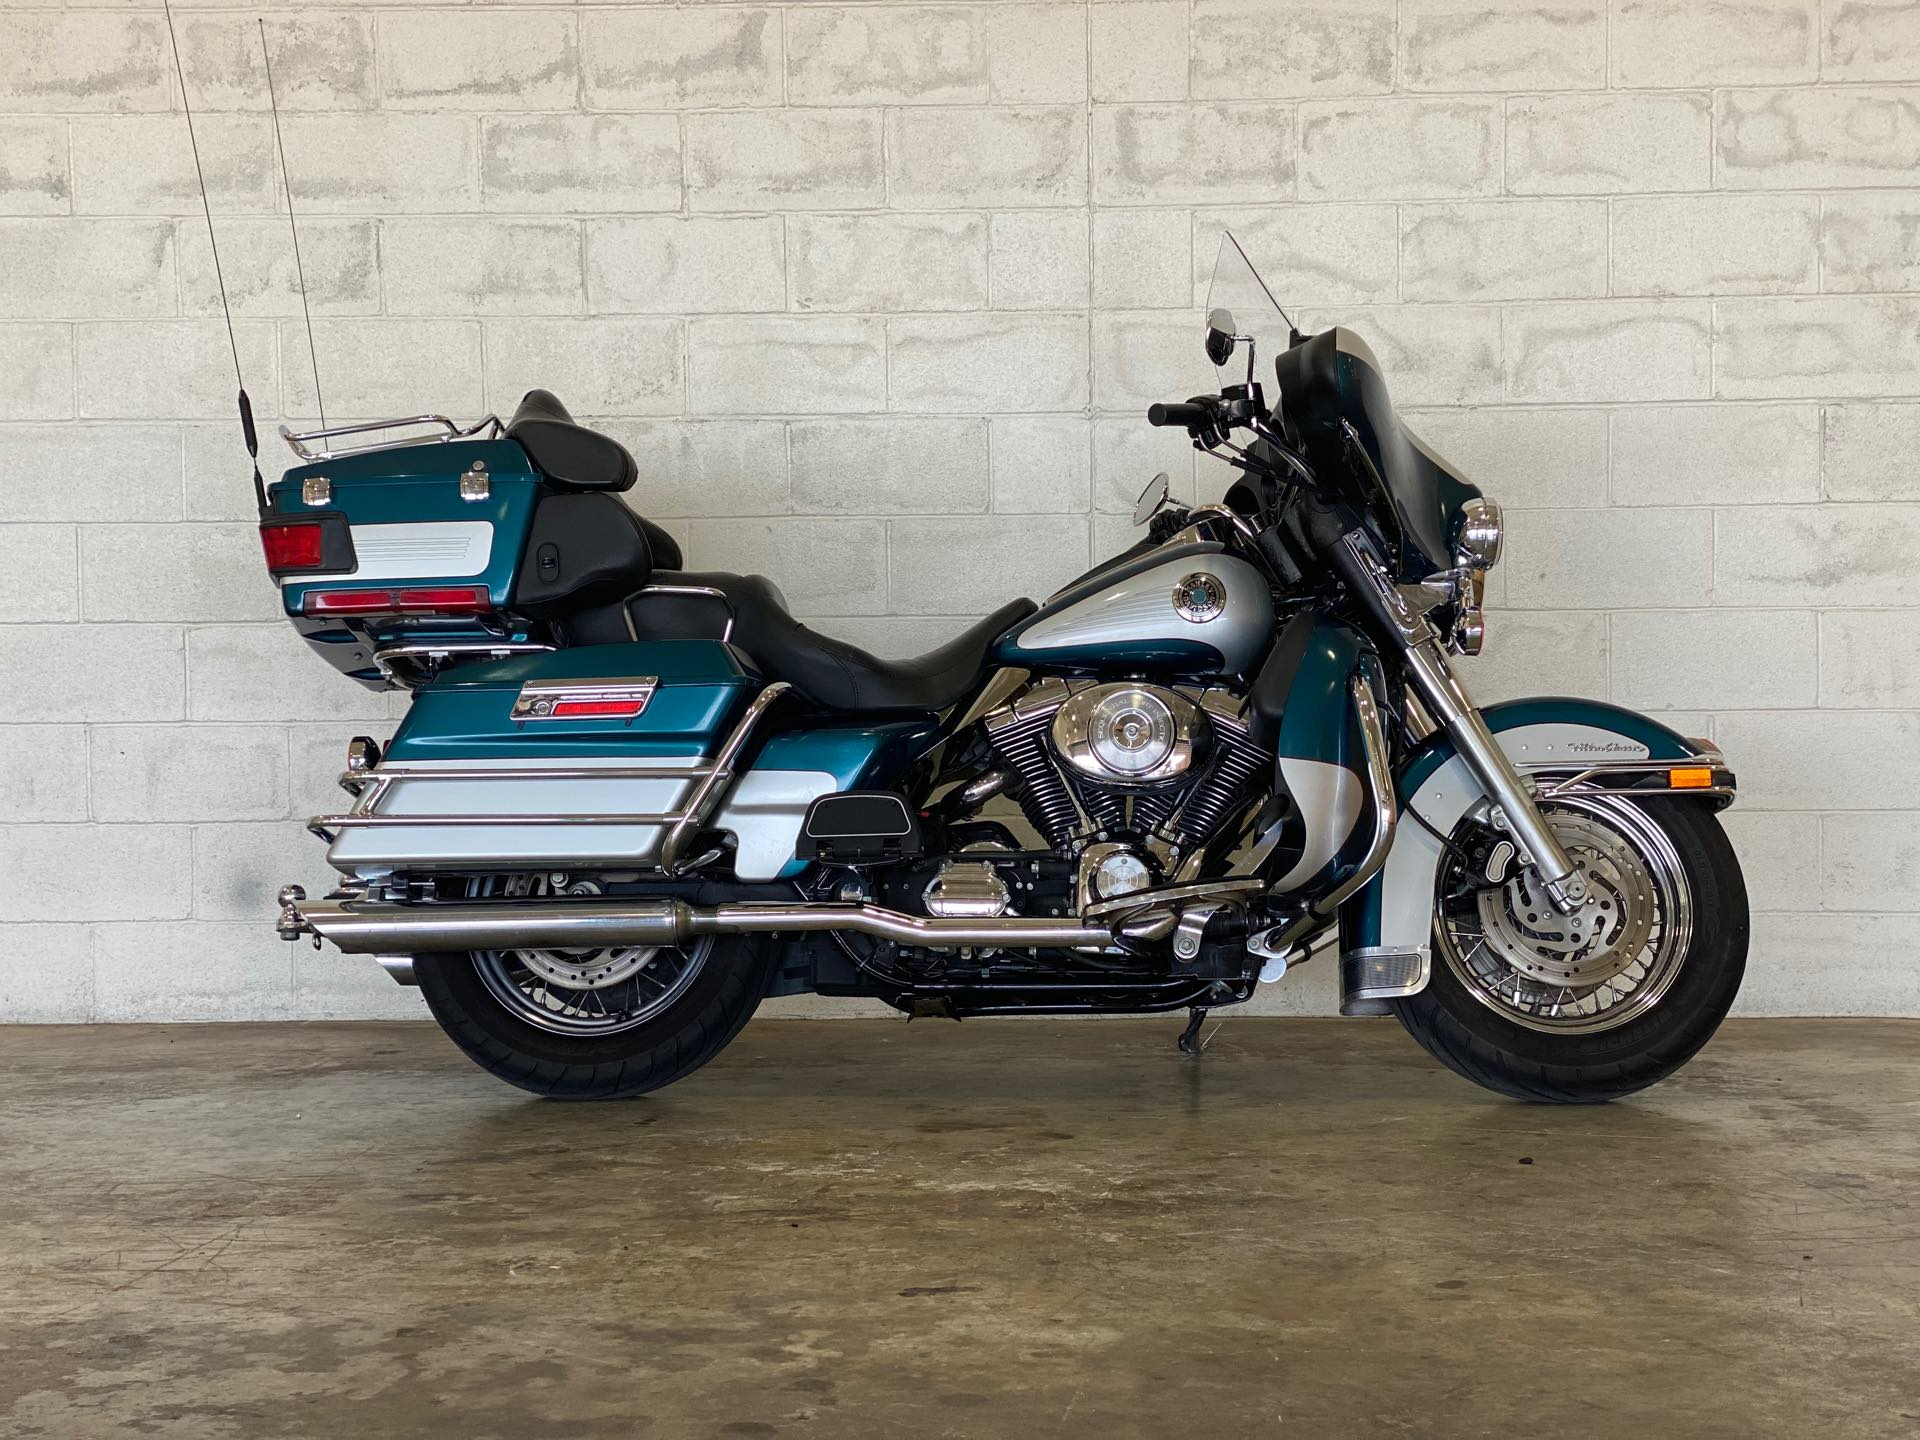 2004 Harley-Davidson Electra Glide Ultra Classic at Twisted Cycles